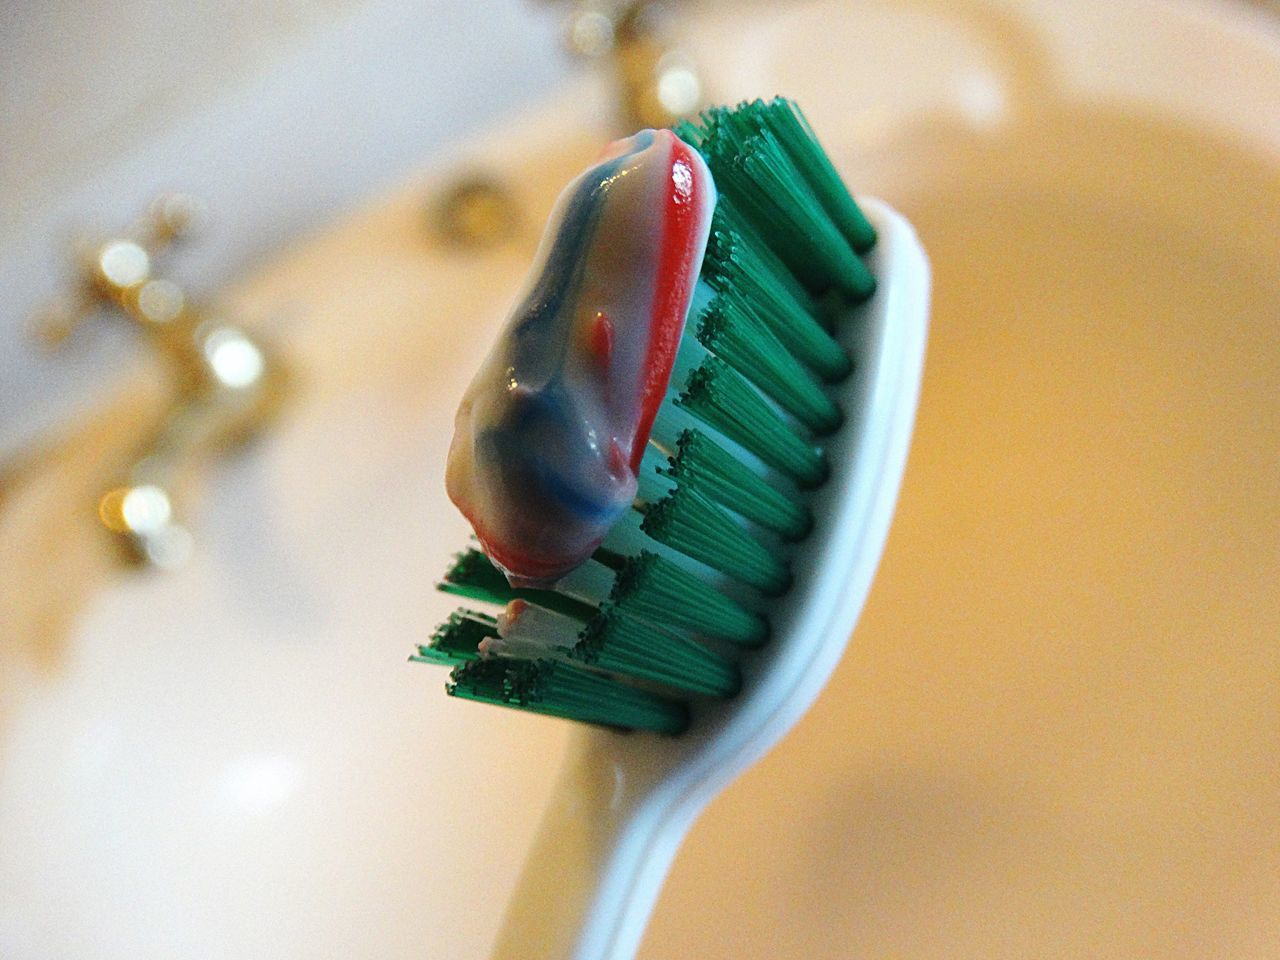 Toothbrush with toothpaste. Toothbrush Toothpaste Paste Dental Dentist Brush Clean Indoors  Focus On Foreground Bathroom Freshness Teeth Brushing Teeth  Cleaning Teeth Hygene Mint Toothbrushes Lifestyles Daily Life Backgrounds